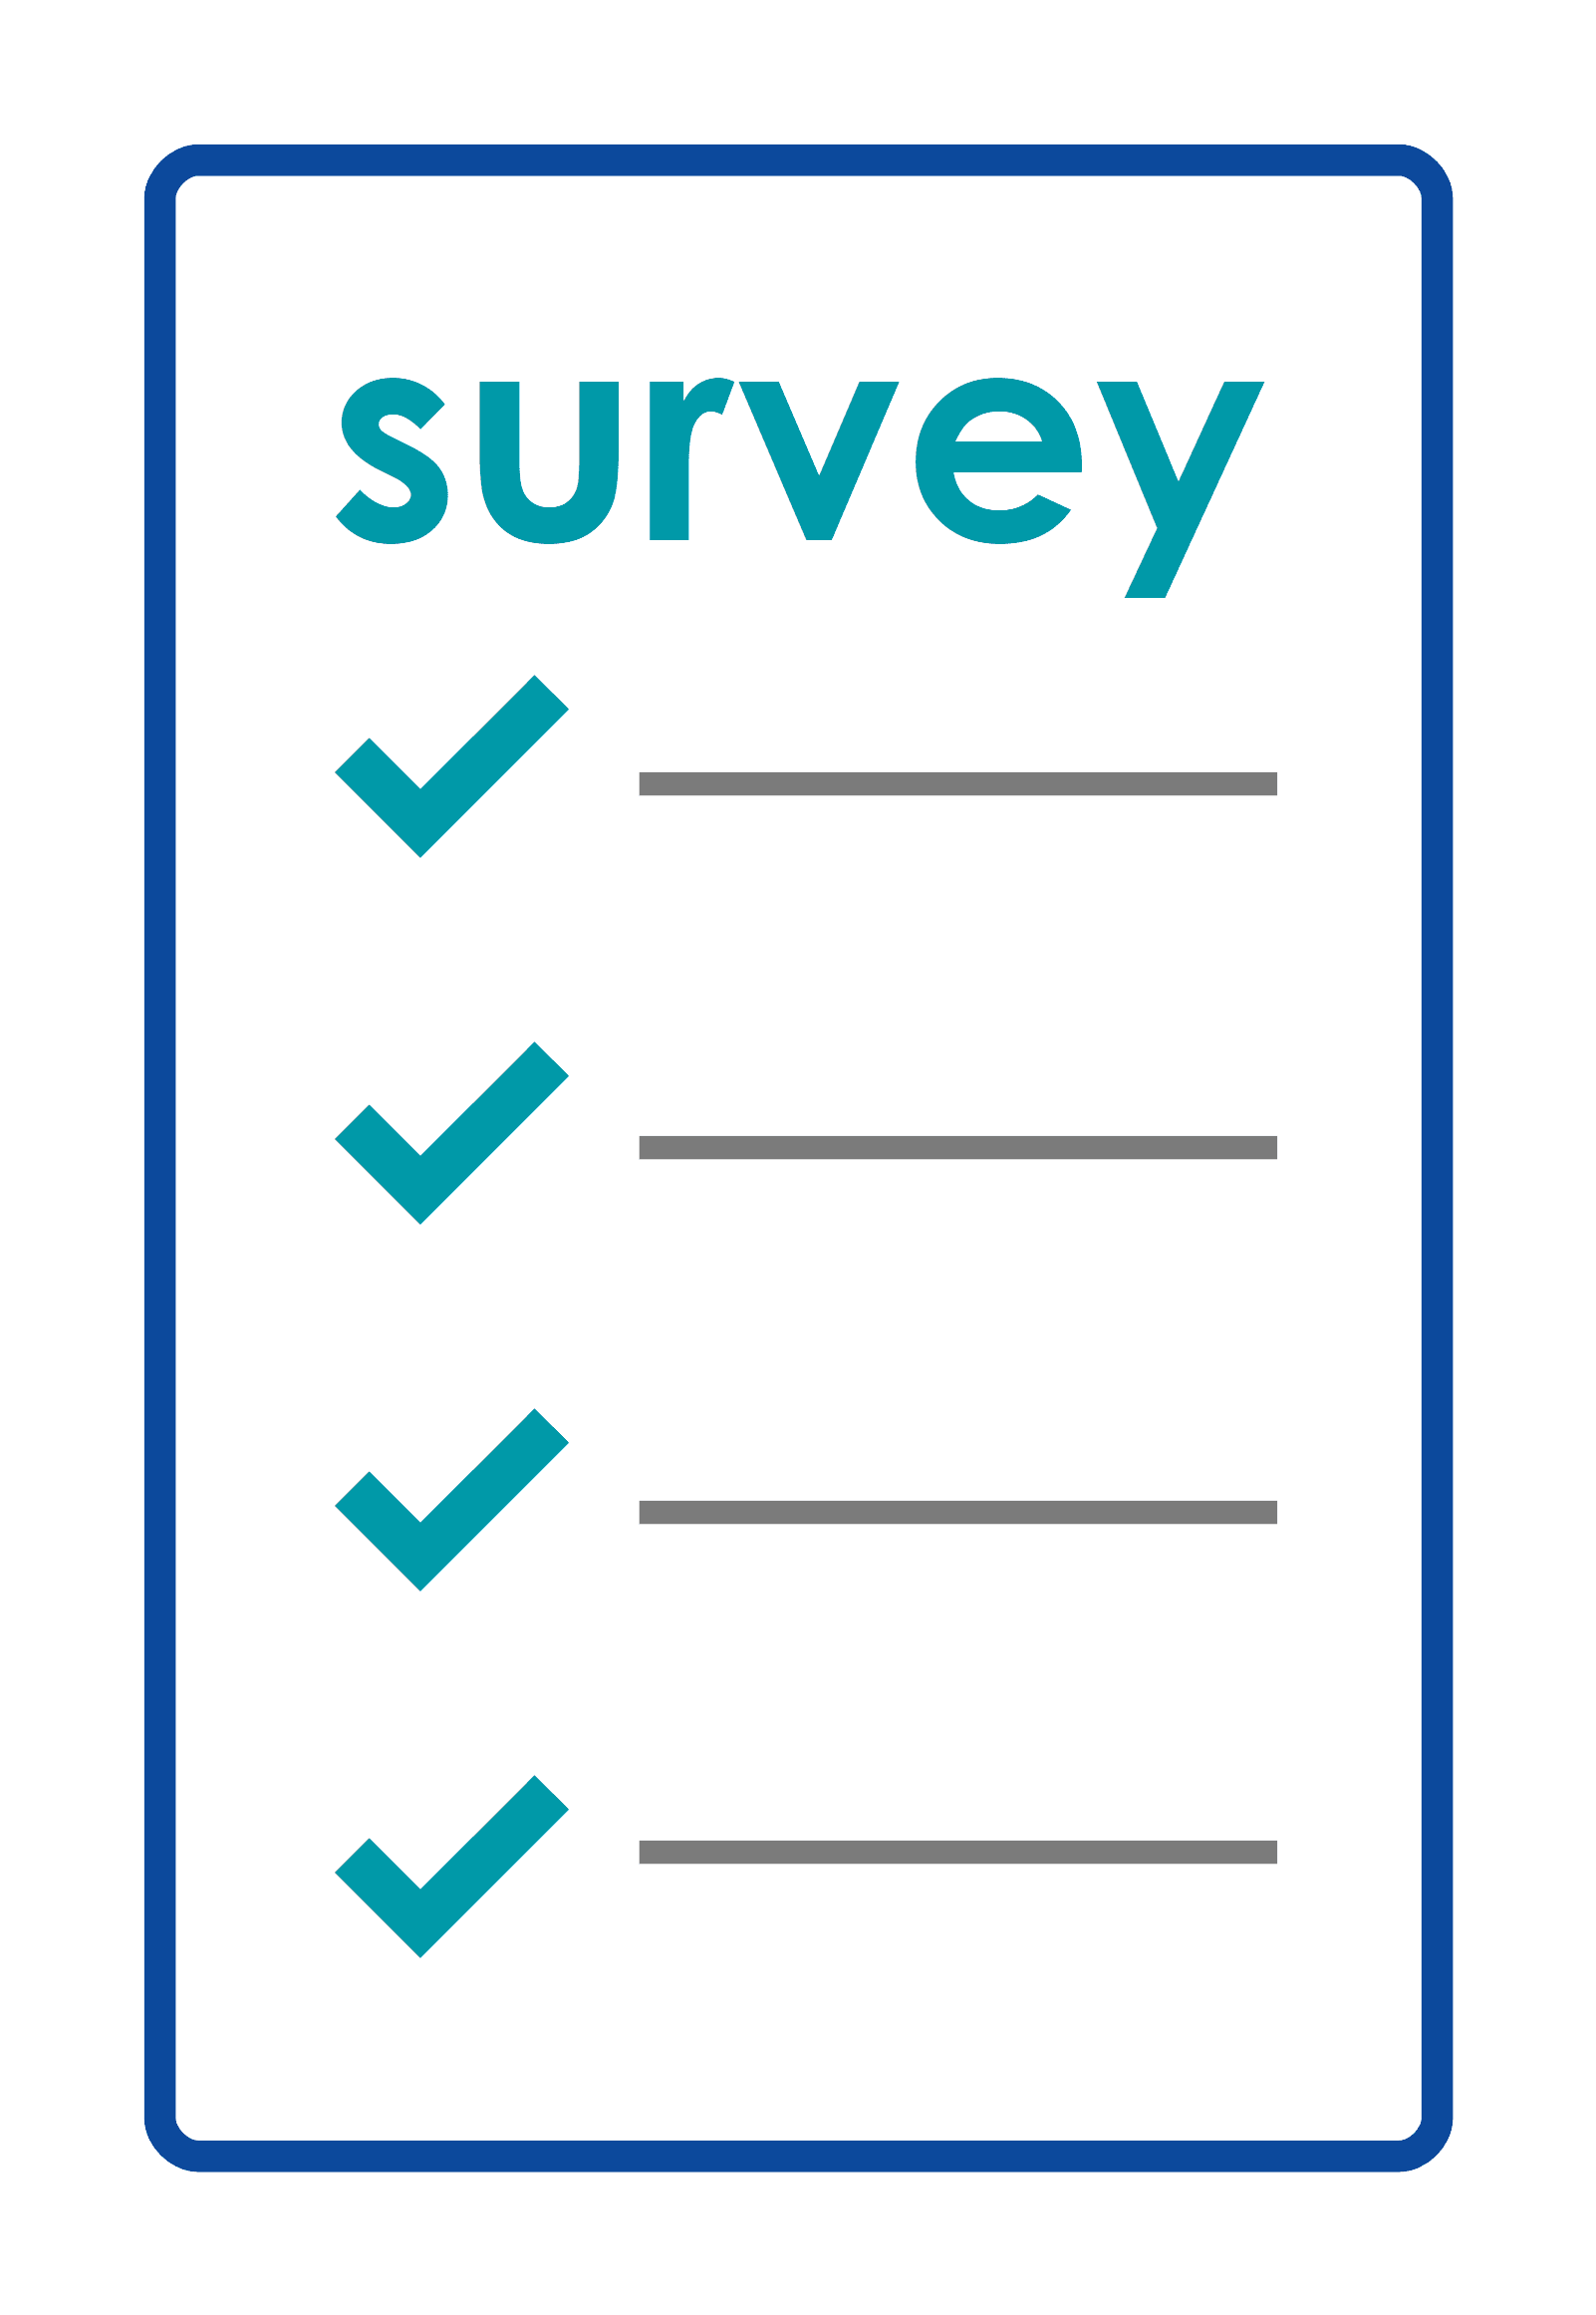 line drawing of a survey form